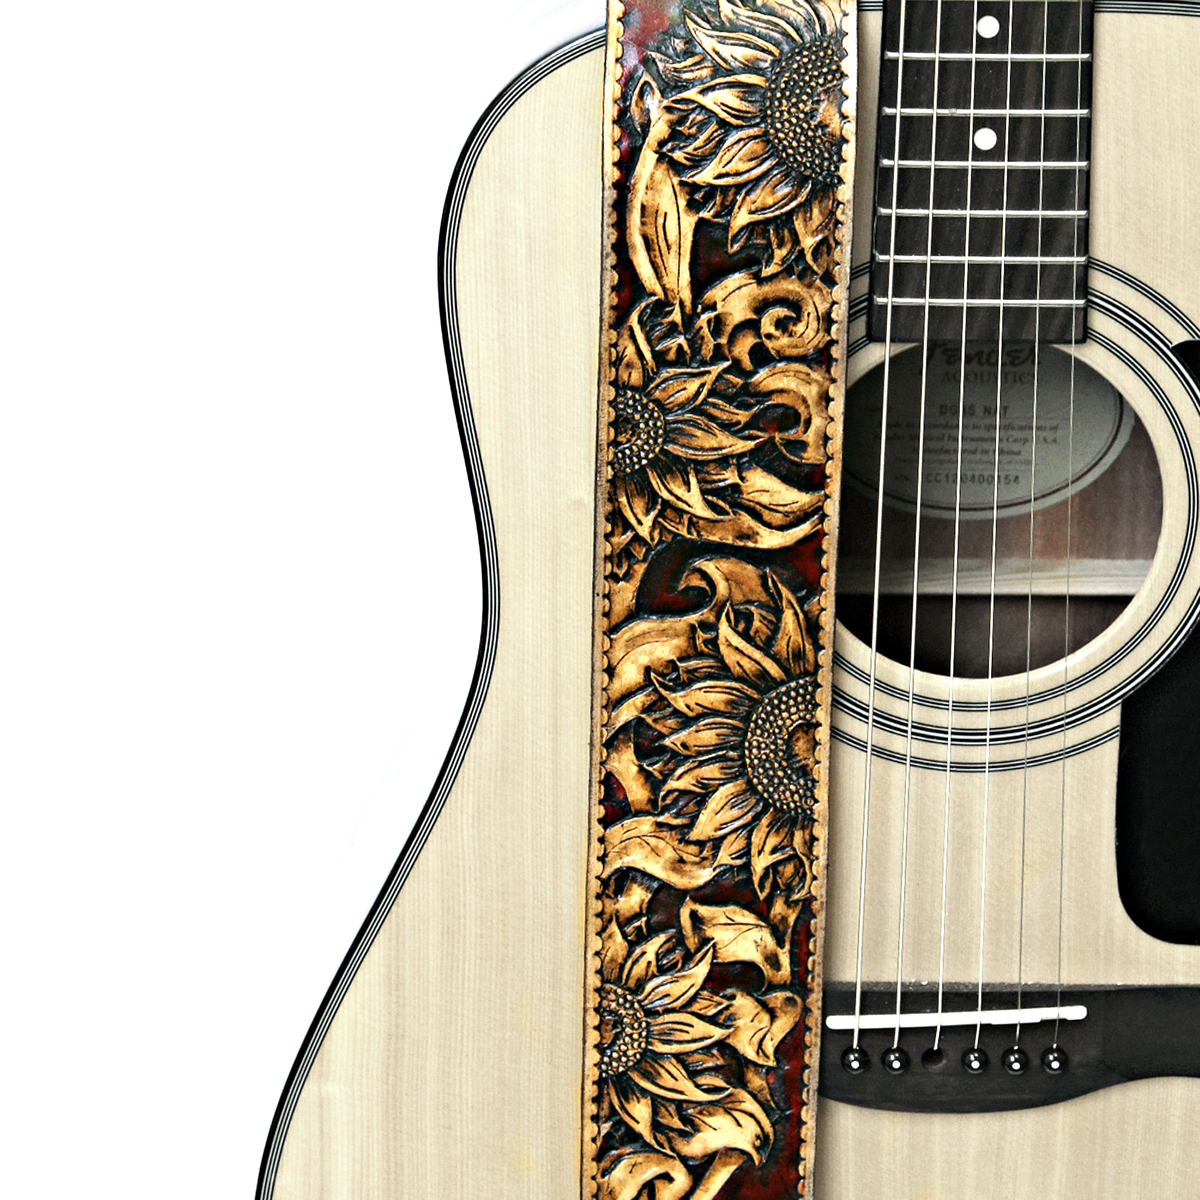 hand-tooled-leather-guitar-strap-with-flowers-womens-guitar-strap-the-leather-smithy_4